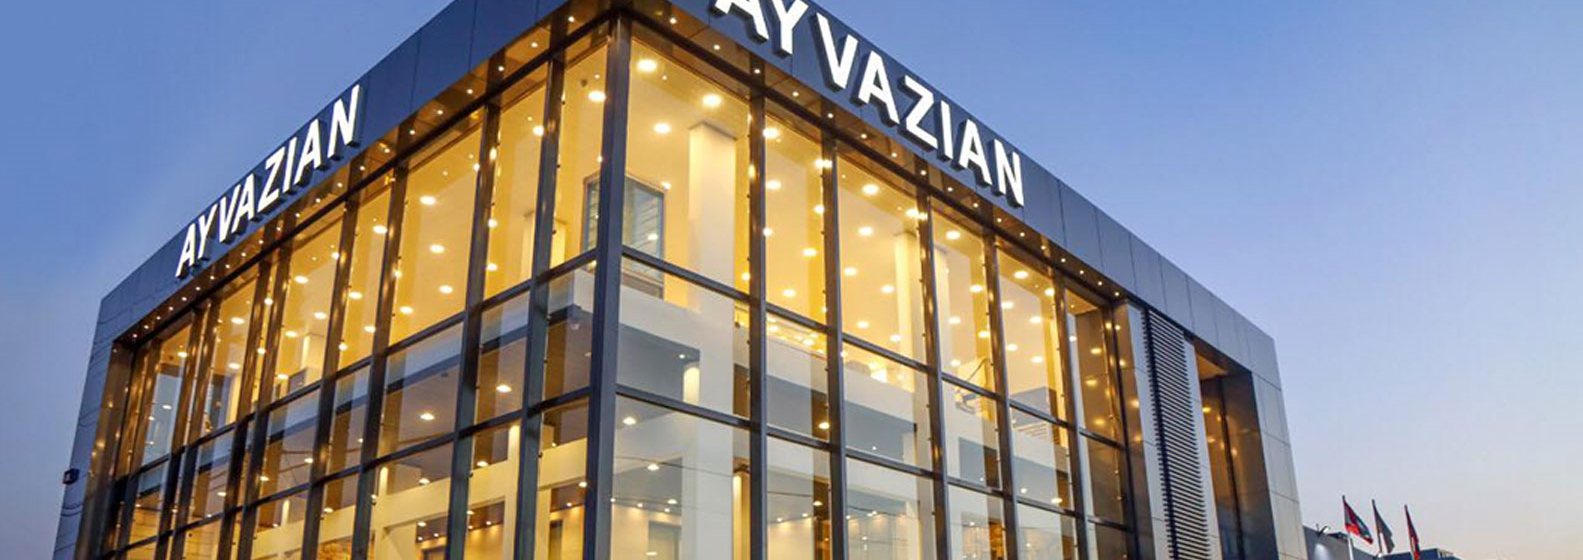 Ayvazian sarl, Your #1 Choice for Restaurant Equipment, Supply & Design